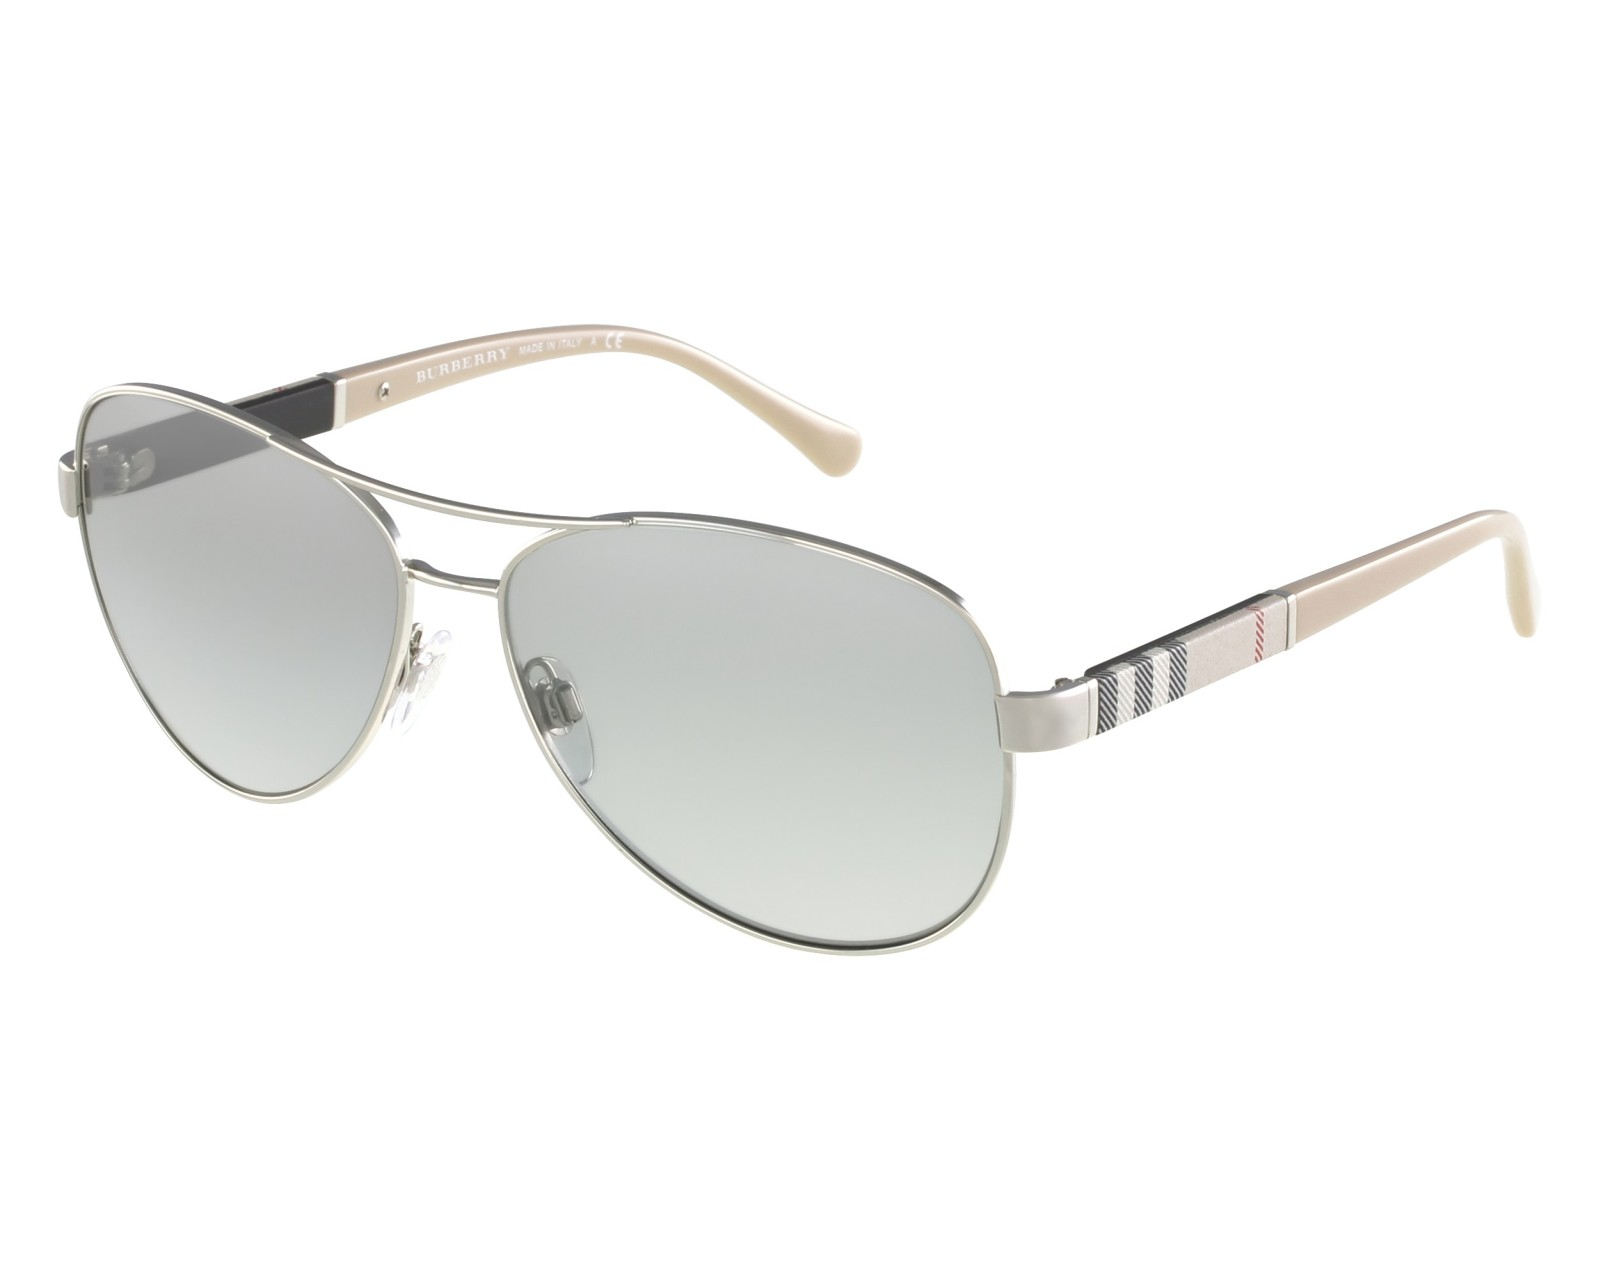 05083fbc17b Sunglasses Burberry BE-3080 1005 6V 59-14 Silver Beige front view